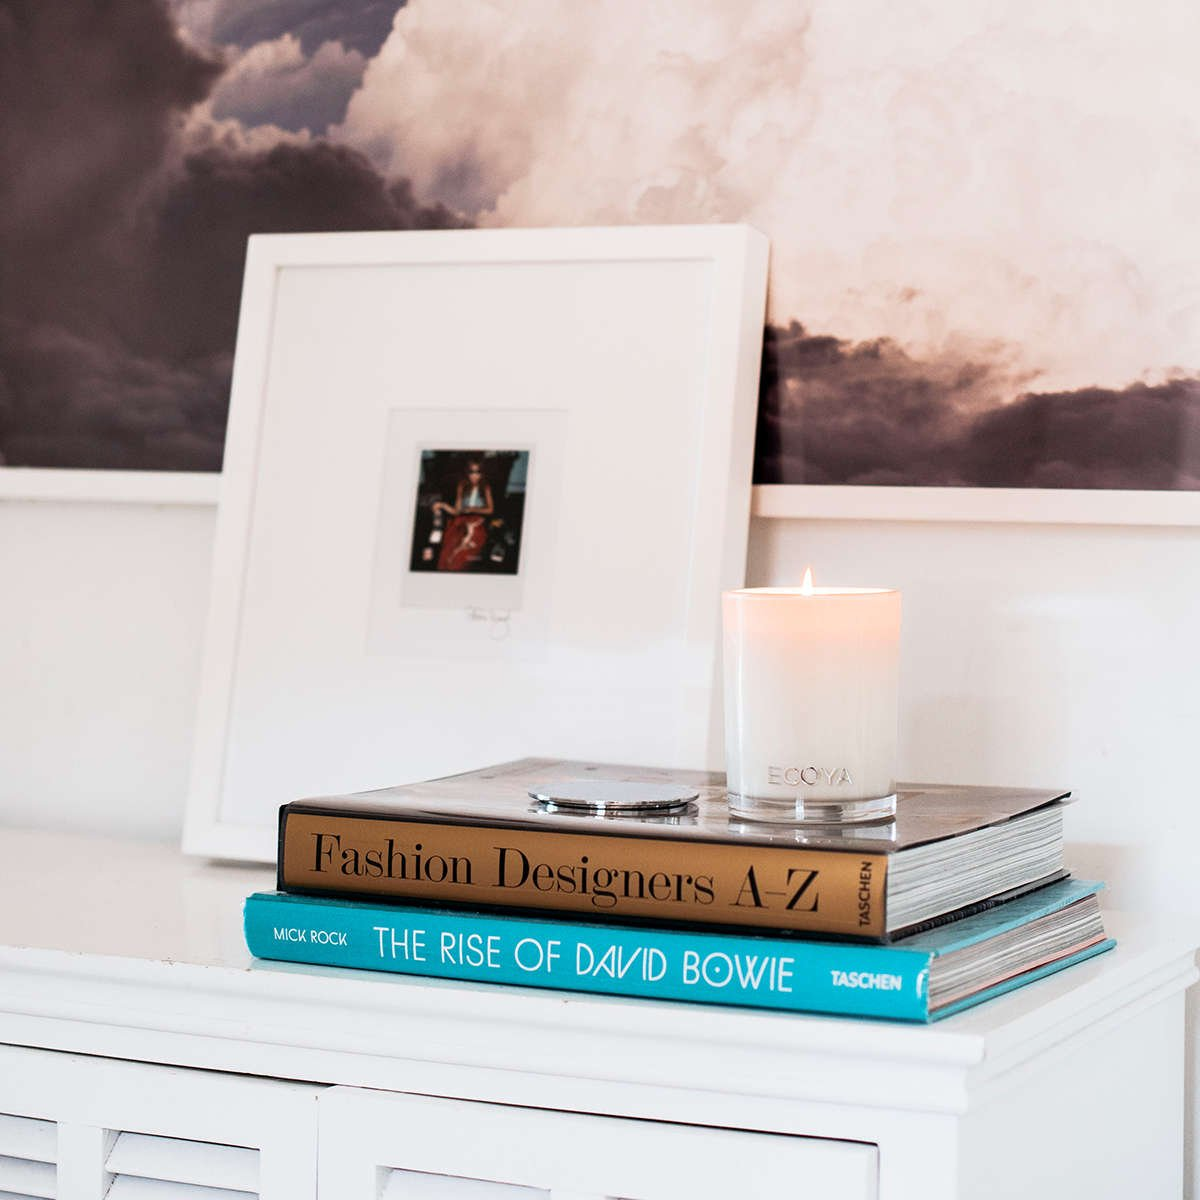 Candle and books in bedroom